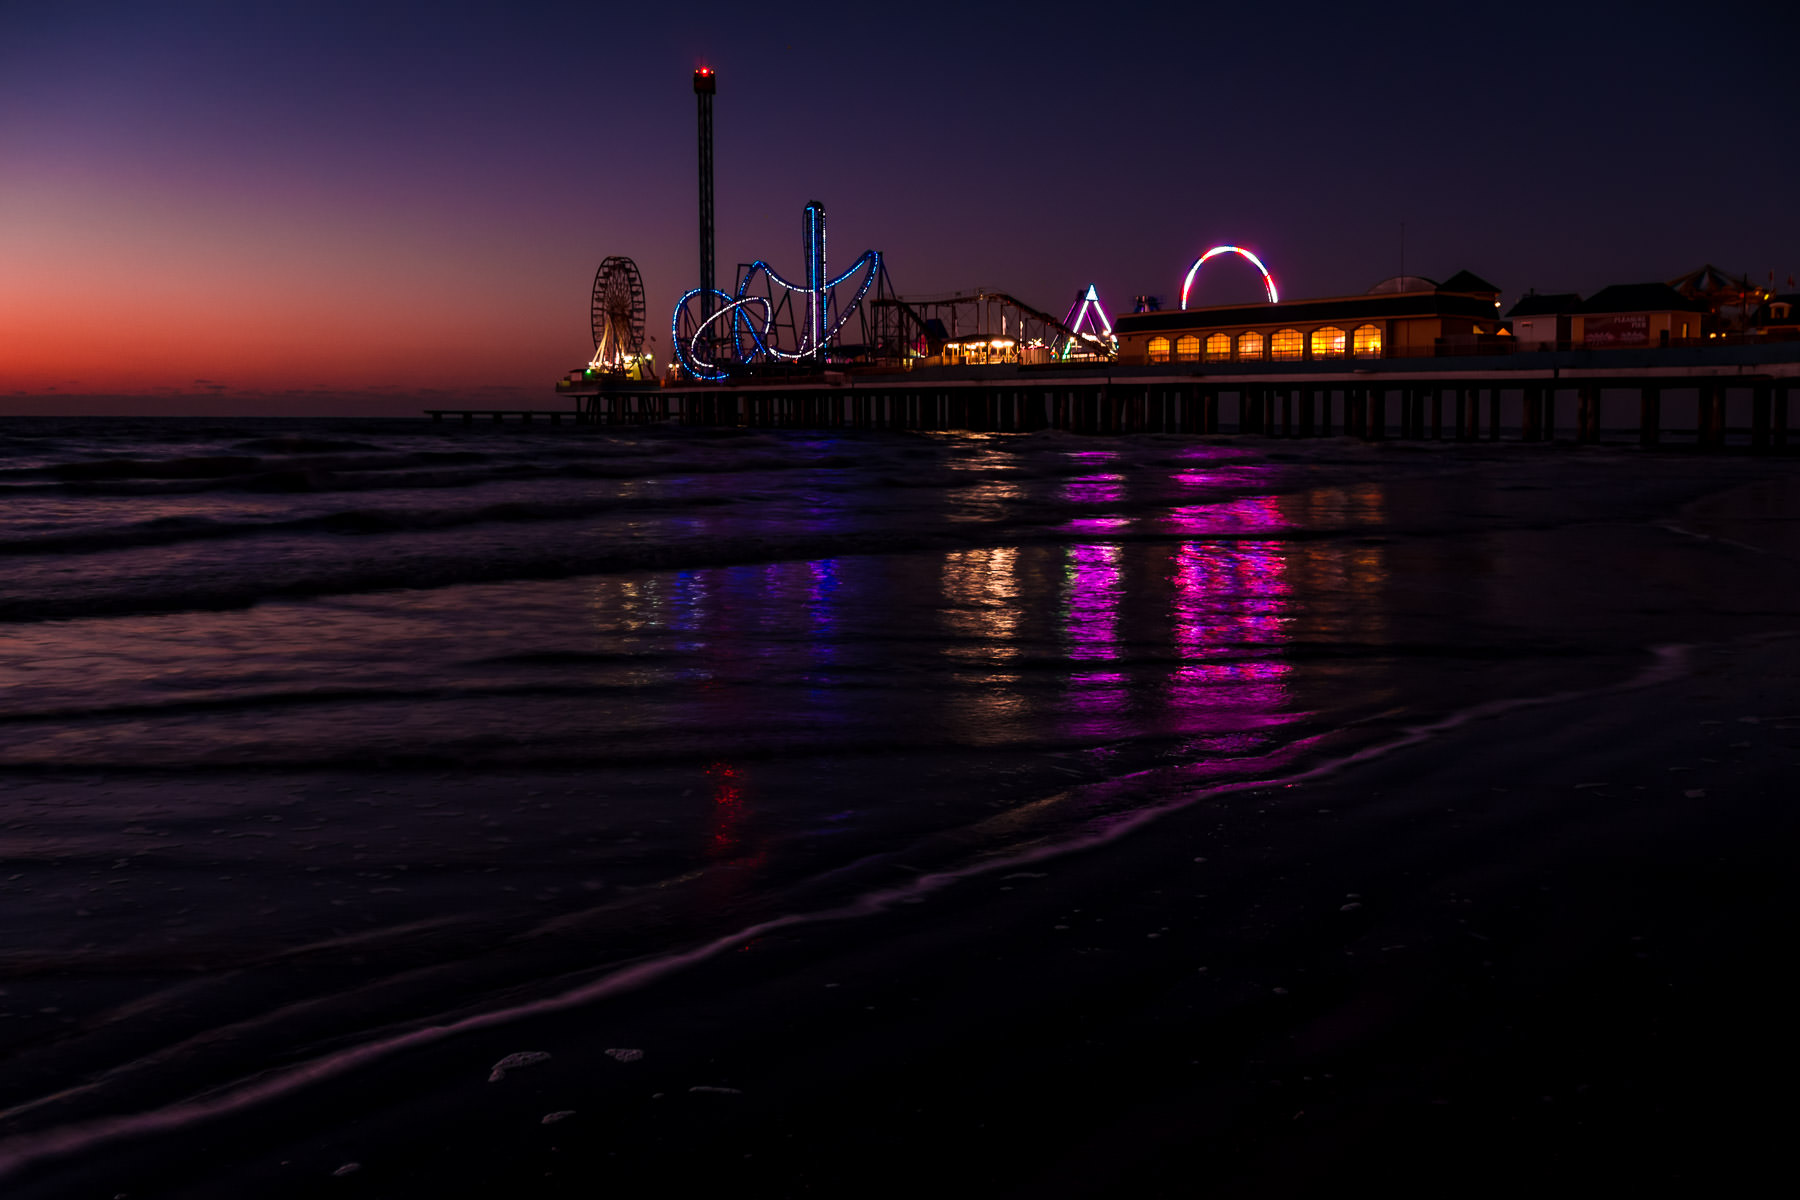 The first light of day rises on the Gulf of Mexico as the lights from Galveston, Texas' Historic Pleasure Pier reflect on the surf.